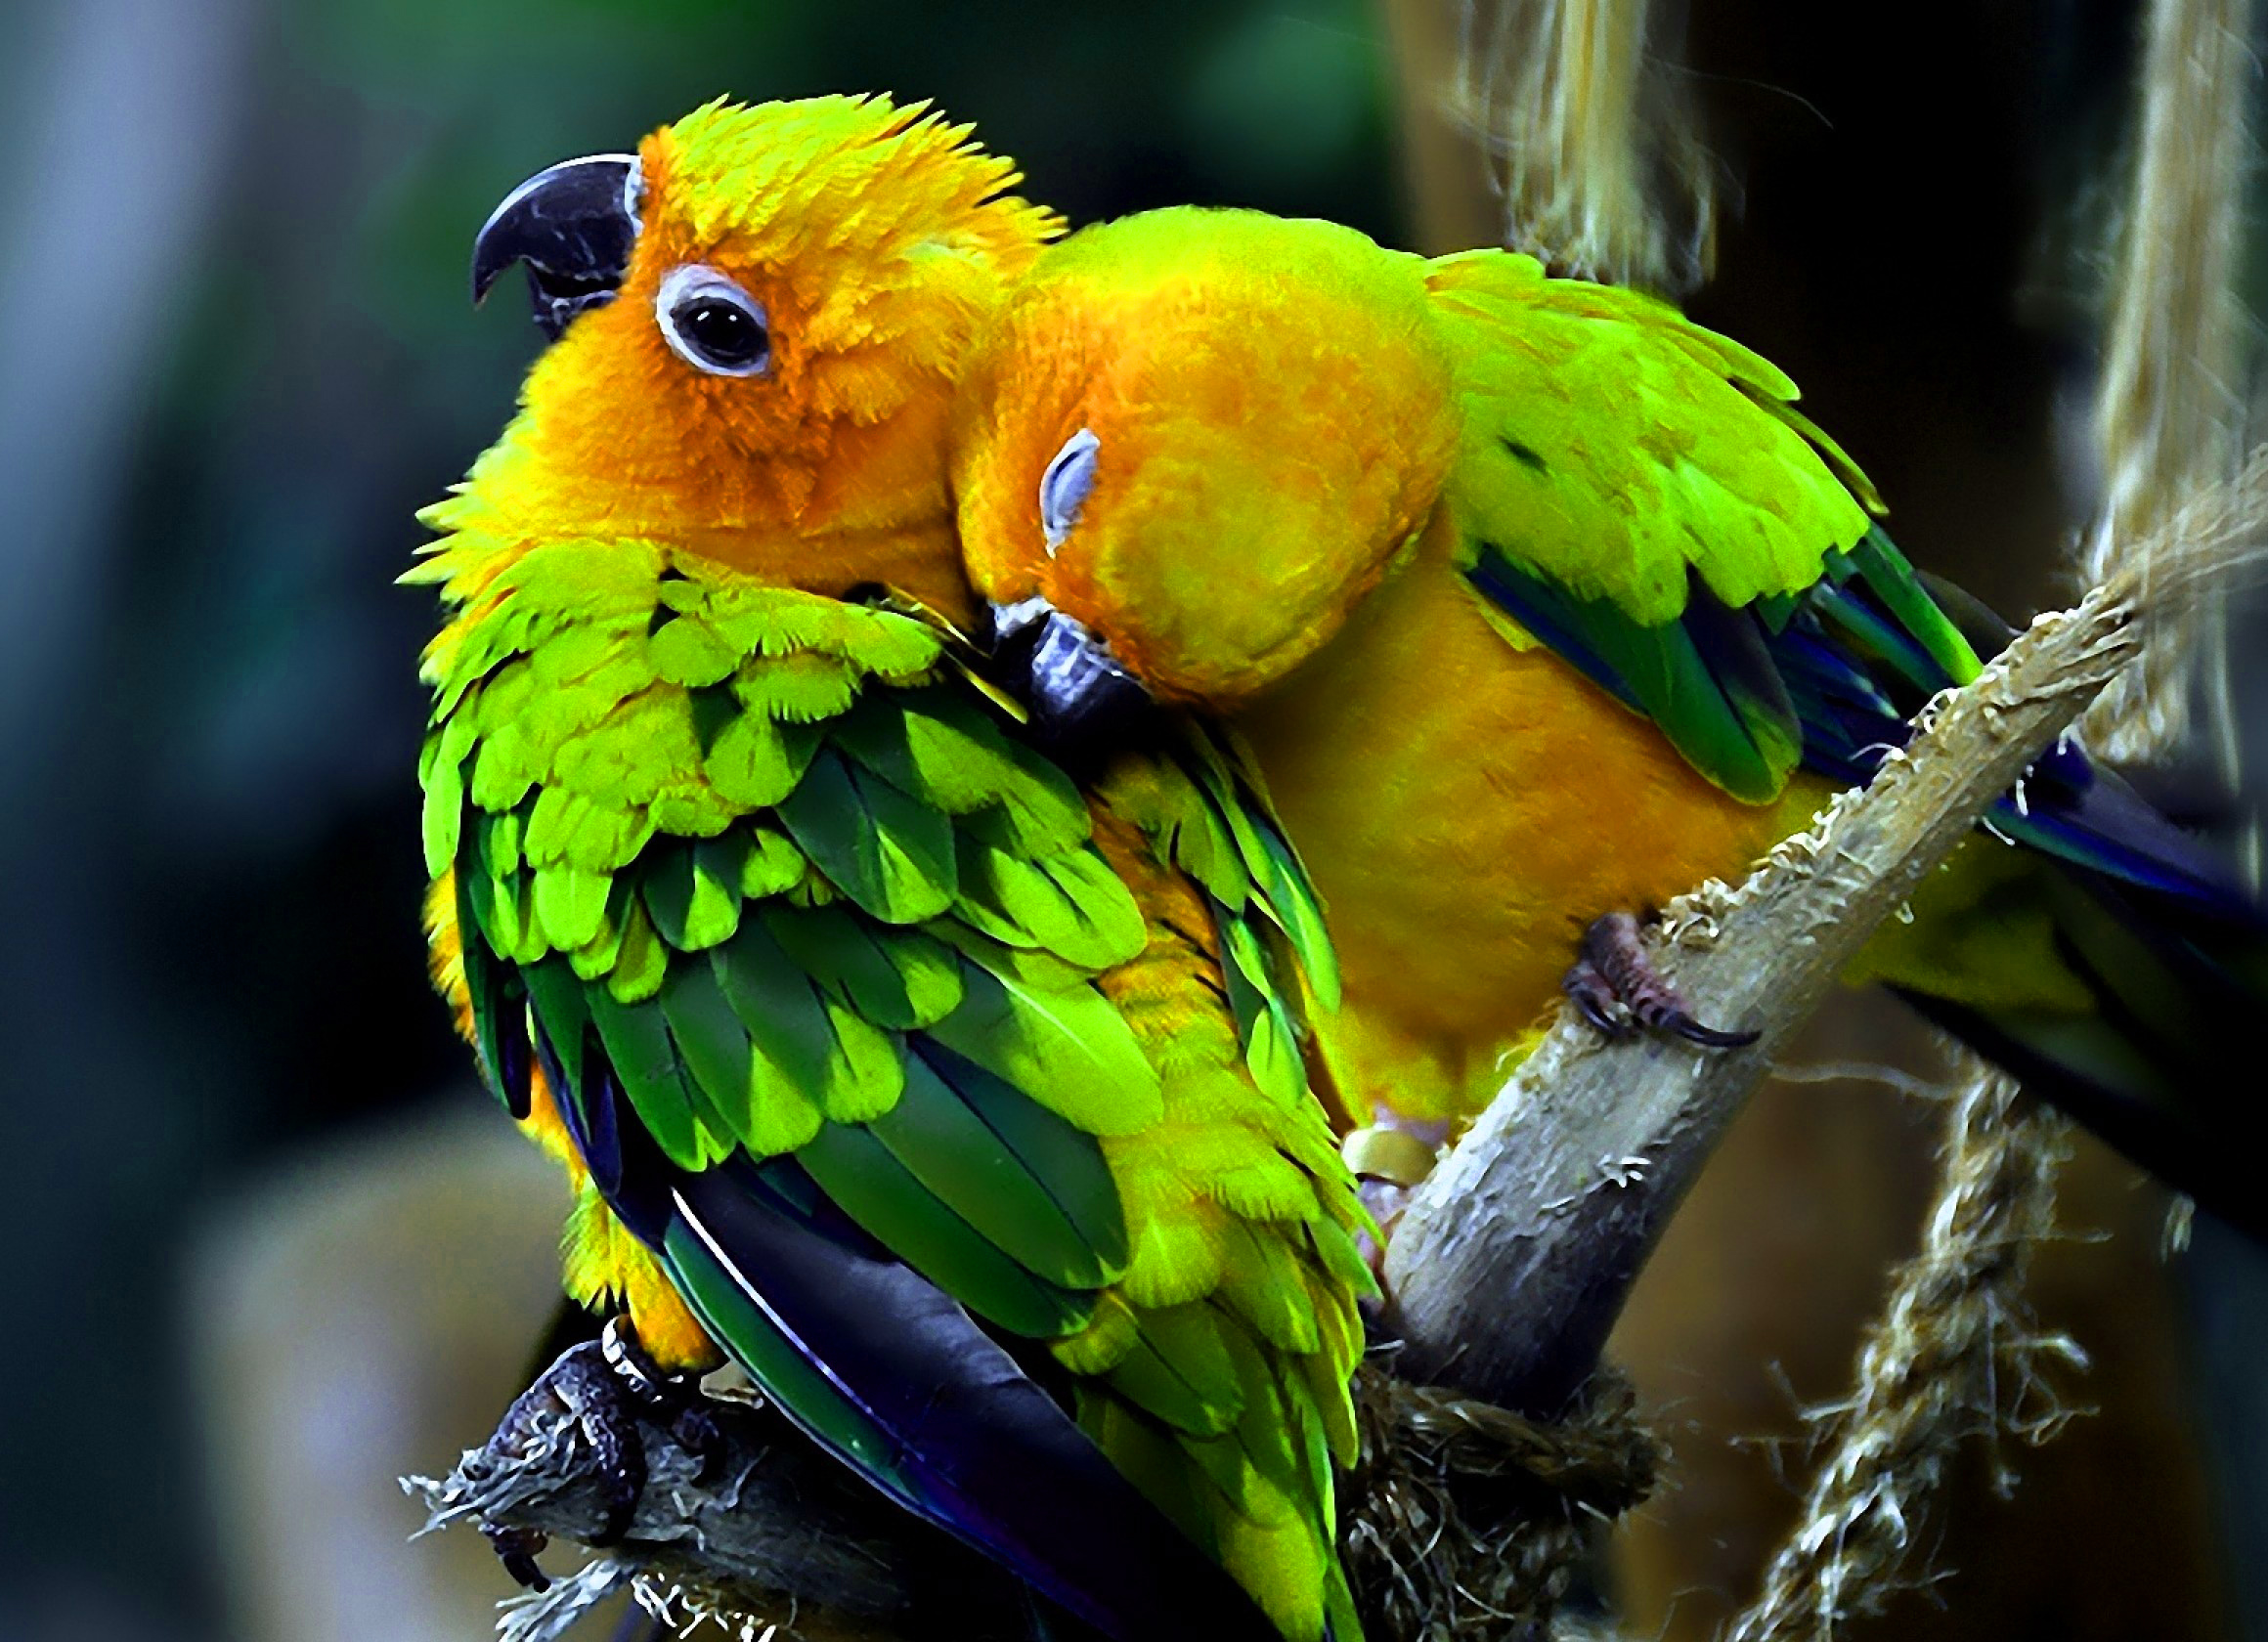 Beautiful Images For Whatsapp Dp With Flower Nature Parrot